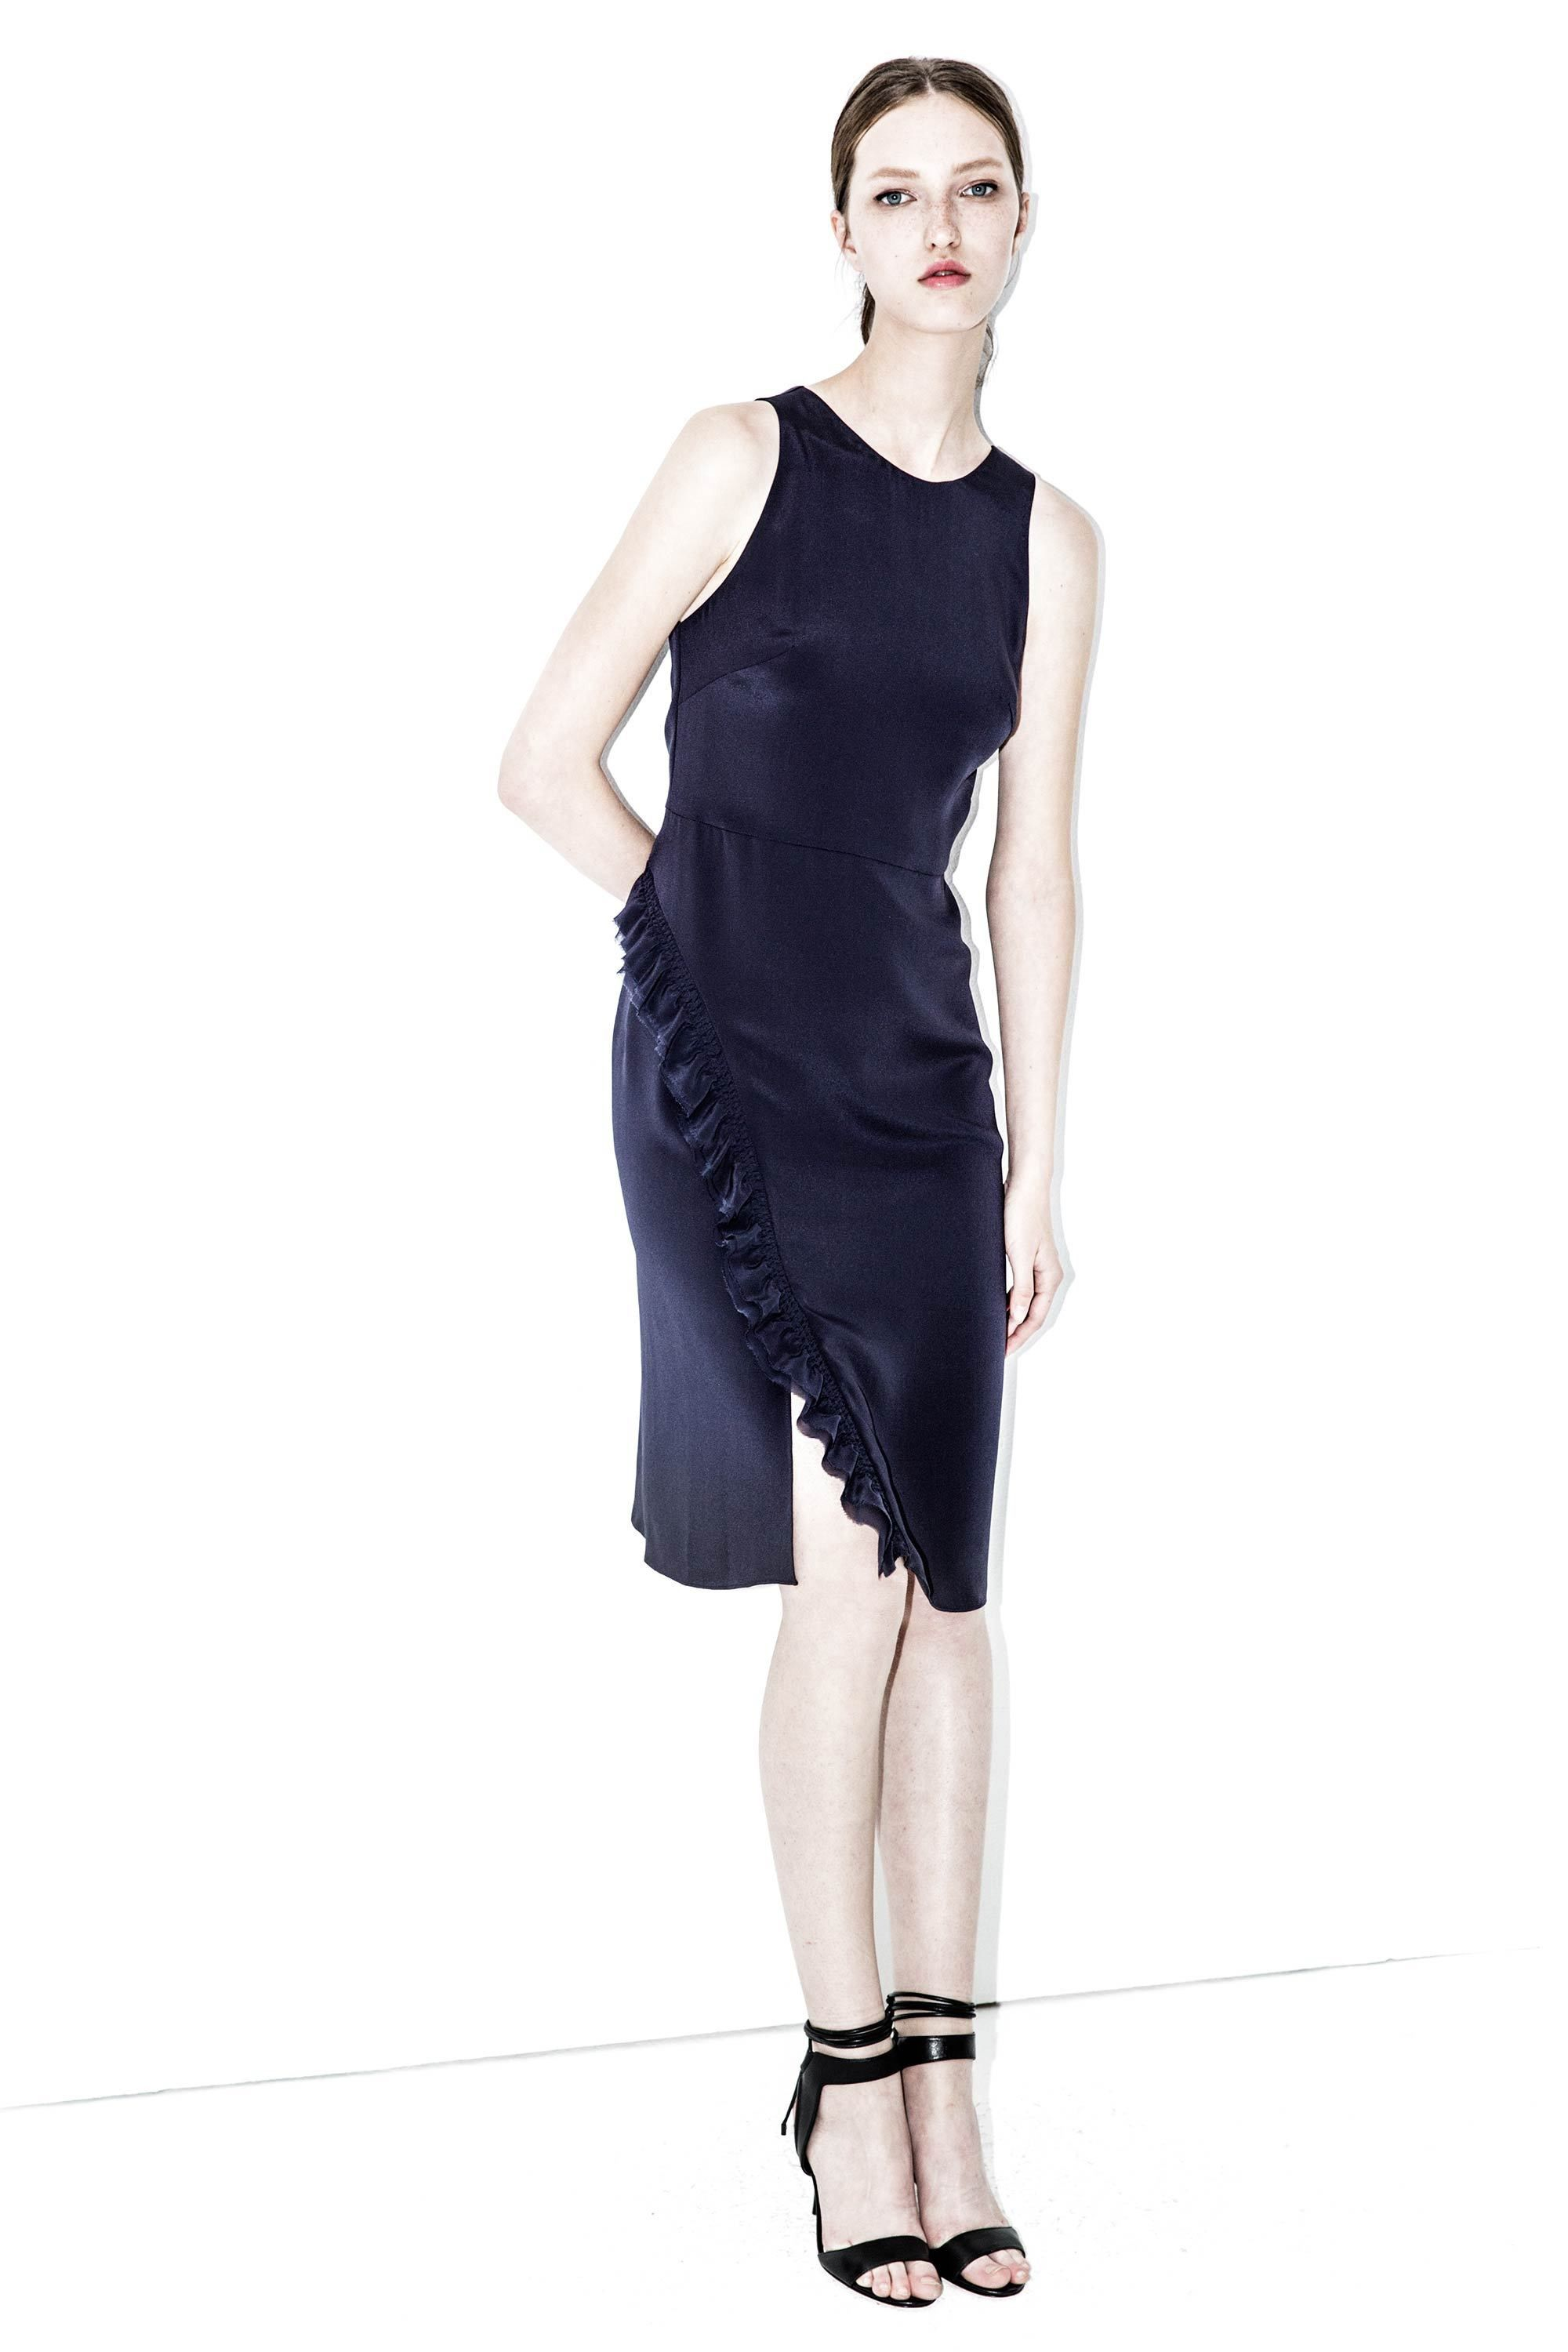 95594b3d6a010a 3.1 PHILLIP LIM Ruffle-front dress - Ink.  3.1philliplim  cloth  all ...